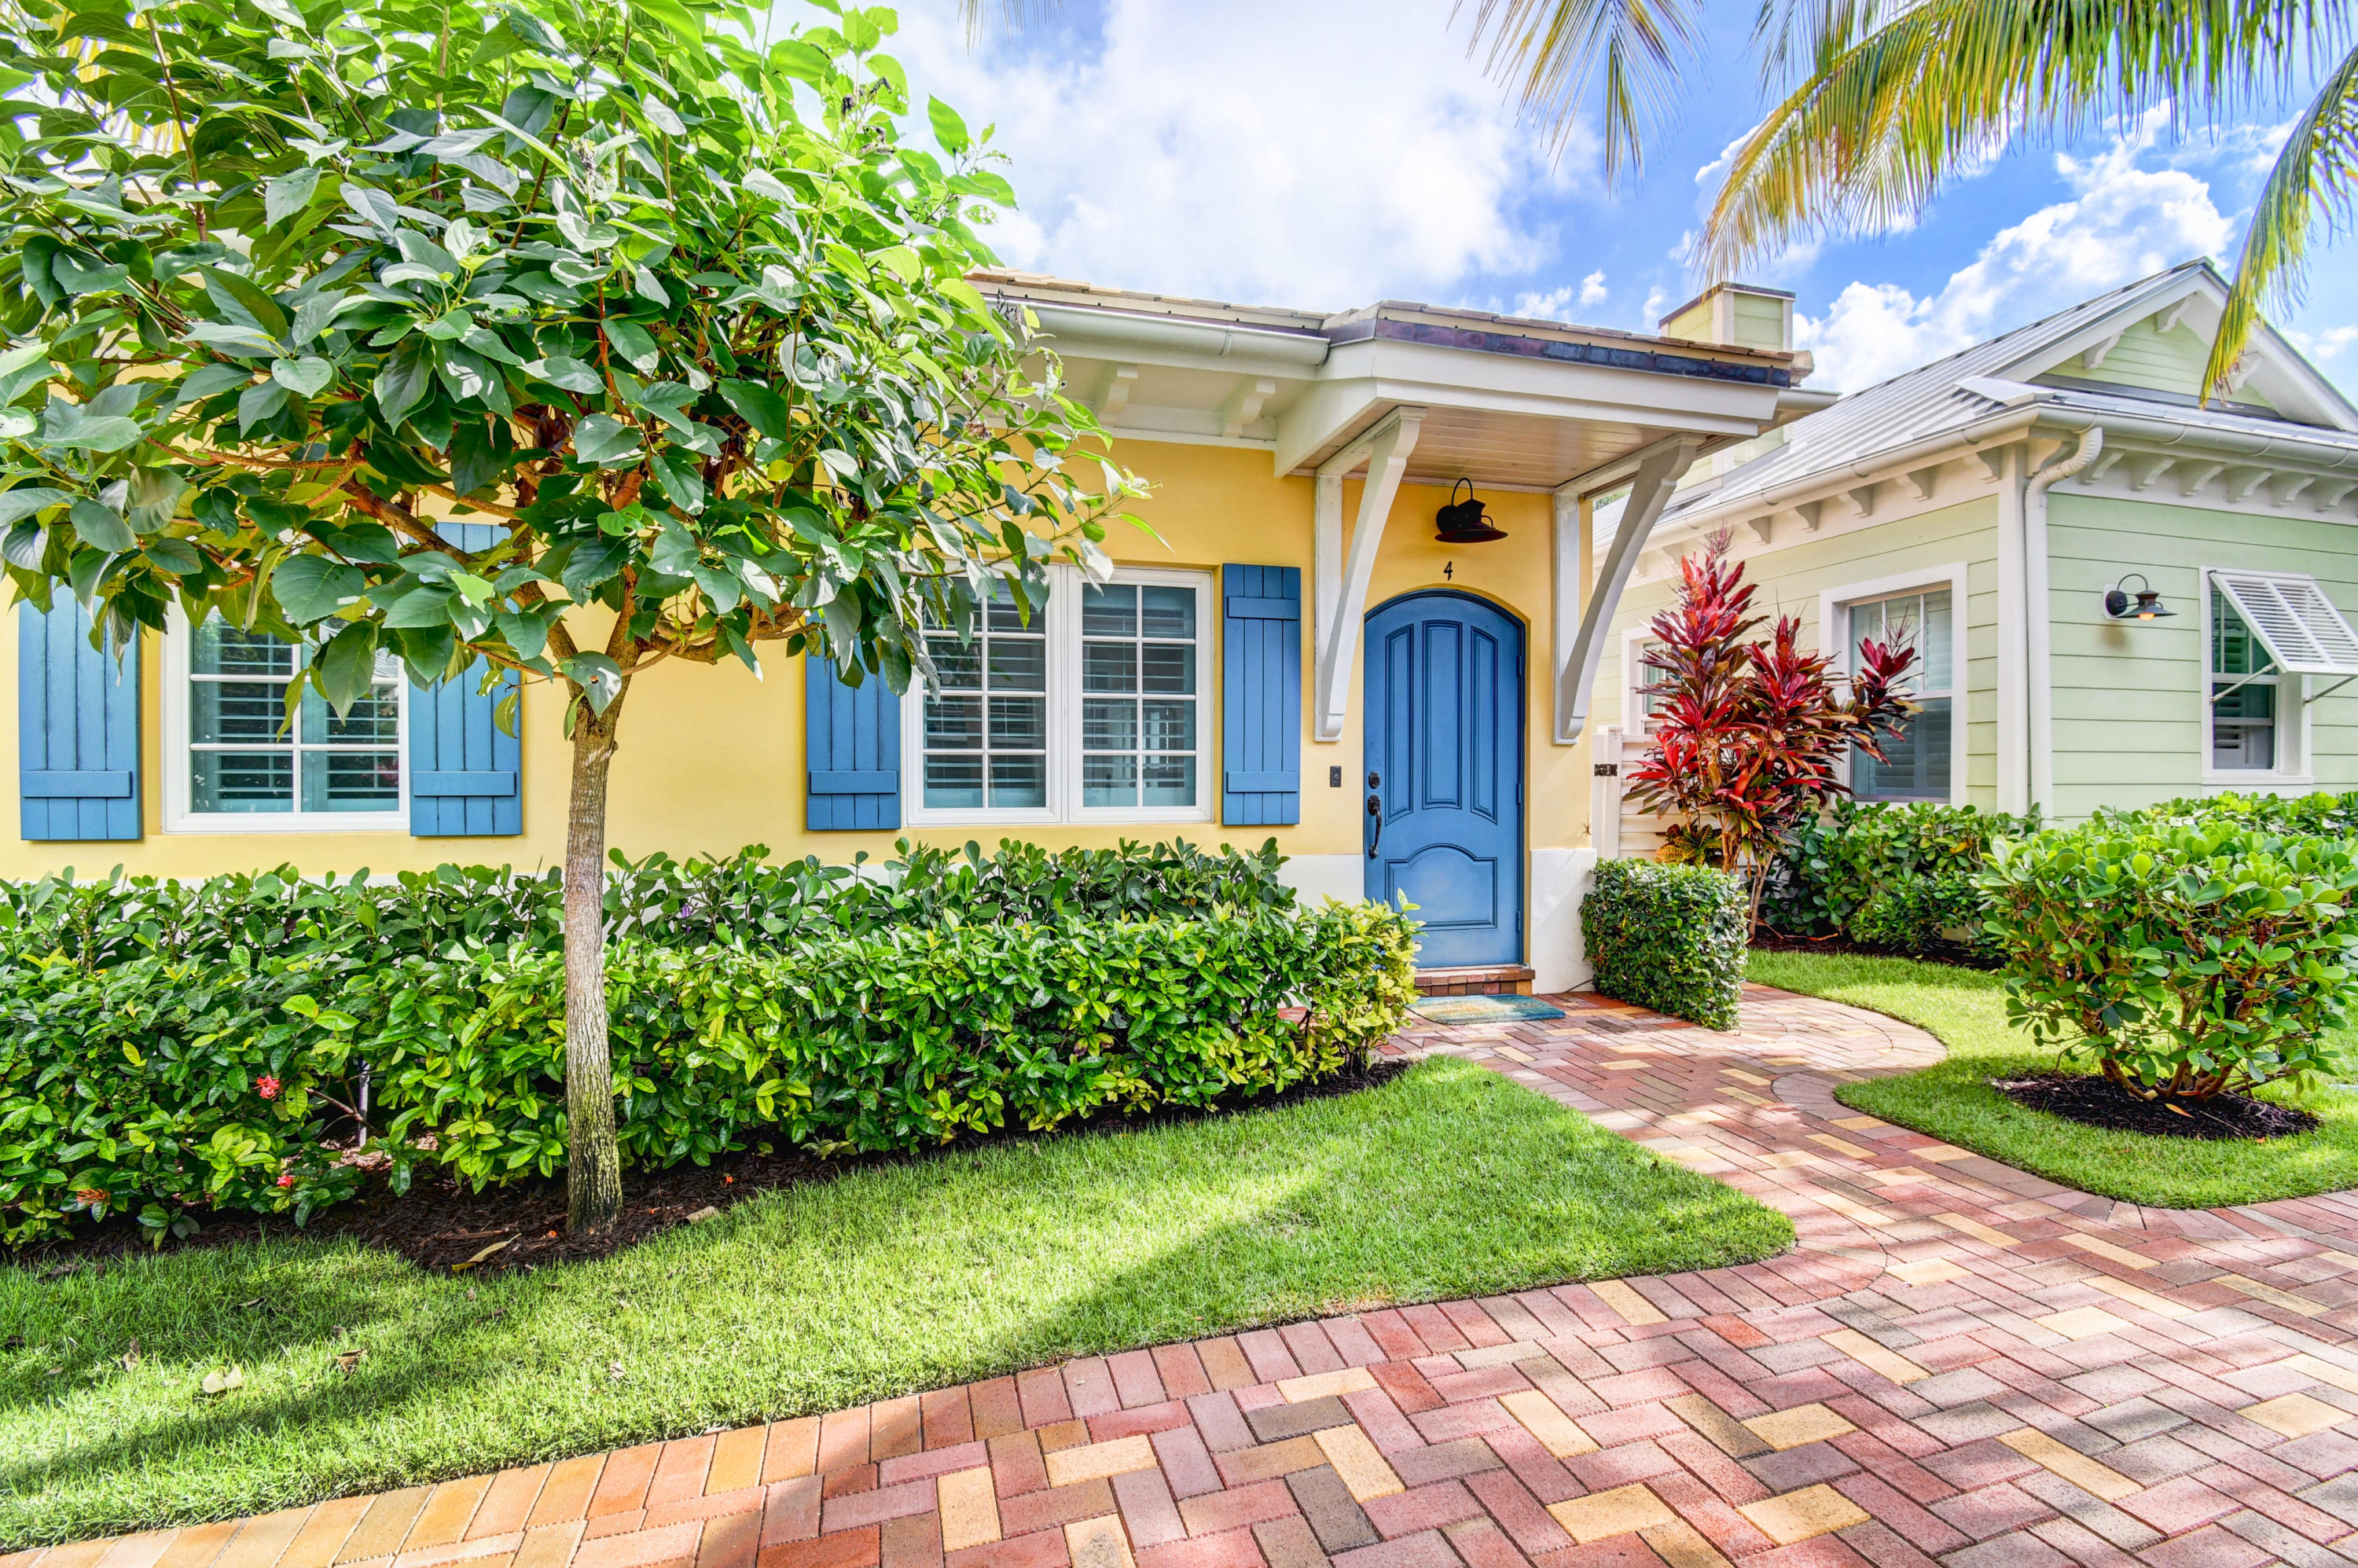 Home for sale in DELRAY VILLAGE BY THE SEA CONDO Delray Beach Florida